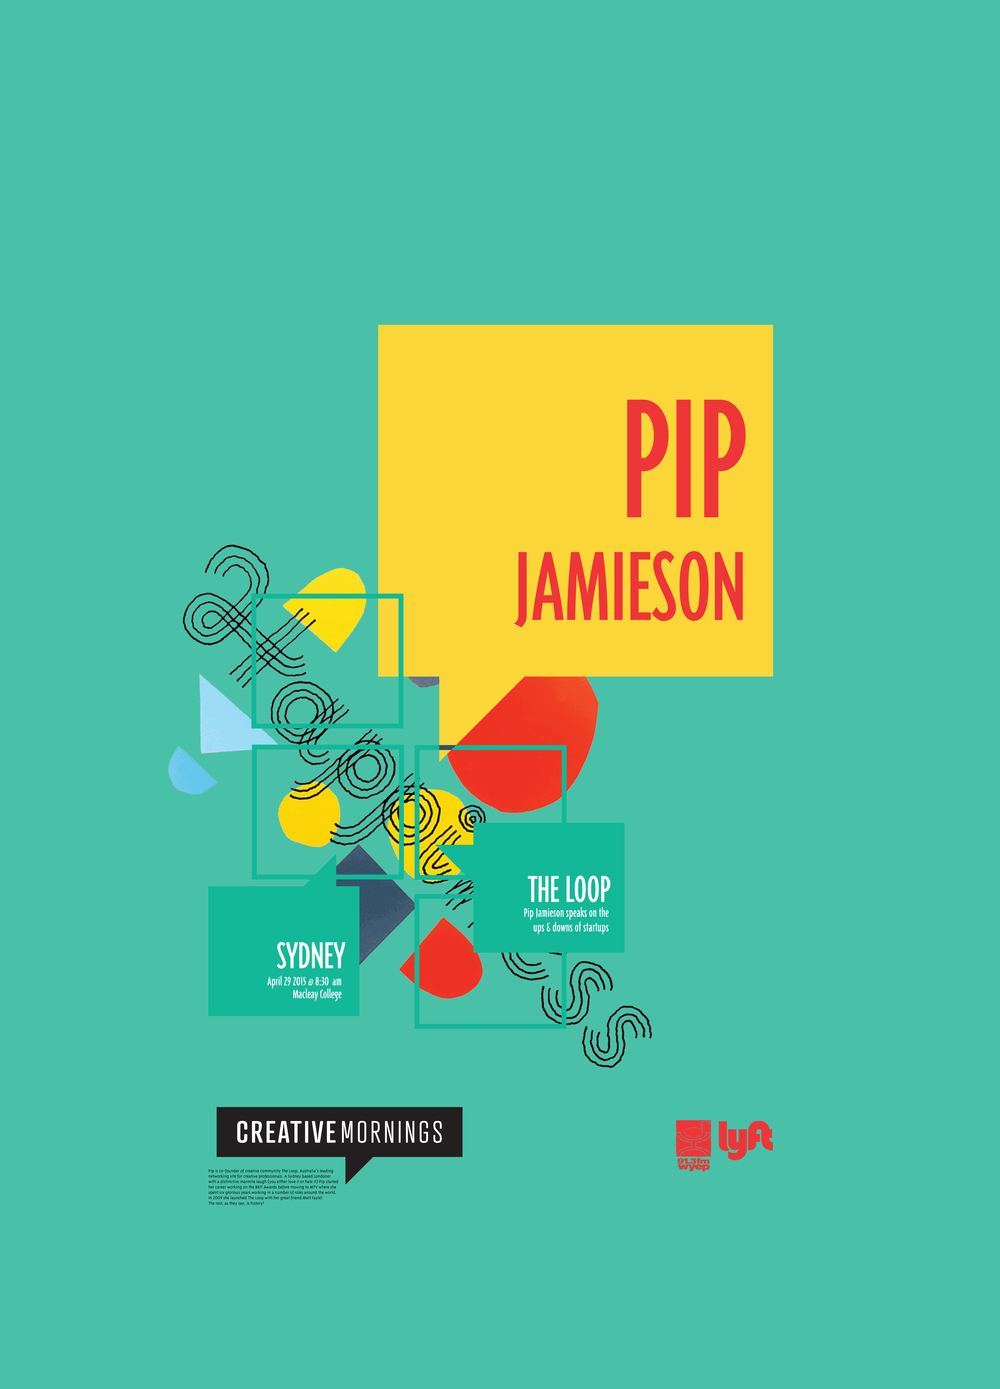 Pip Jamieson_Large FINAL.jpg